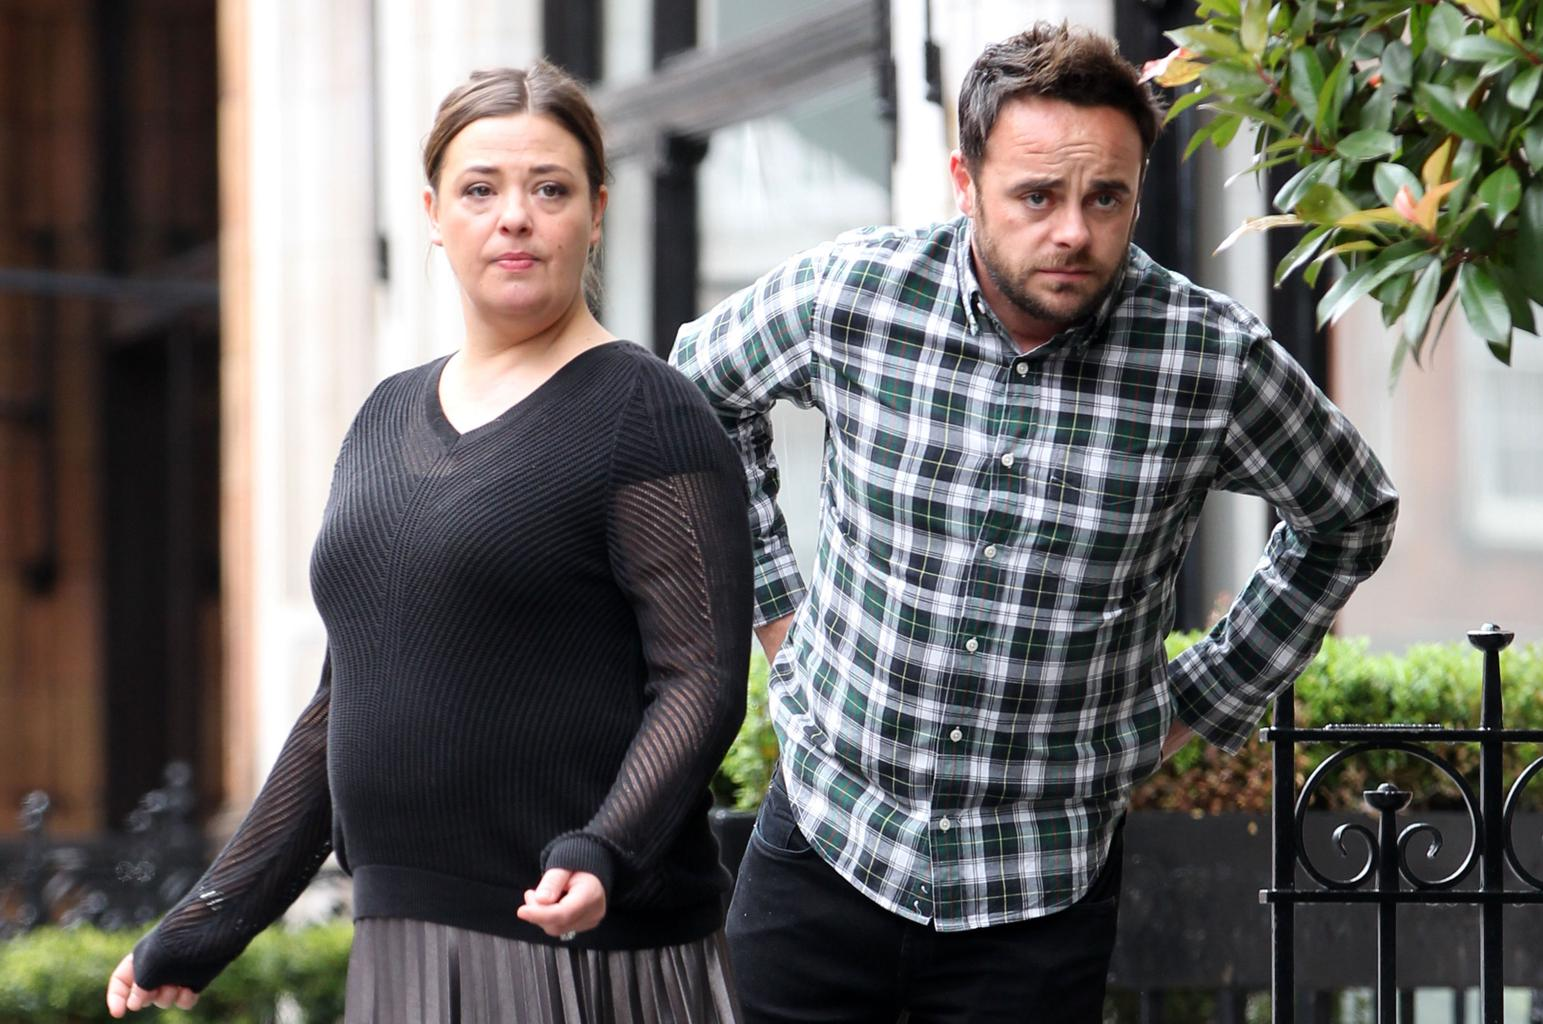 Ant Mcpartlin S Estranged Wife Lisa Hits Back As He Is Seen With New Girlfriend Closer